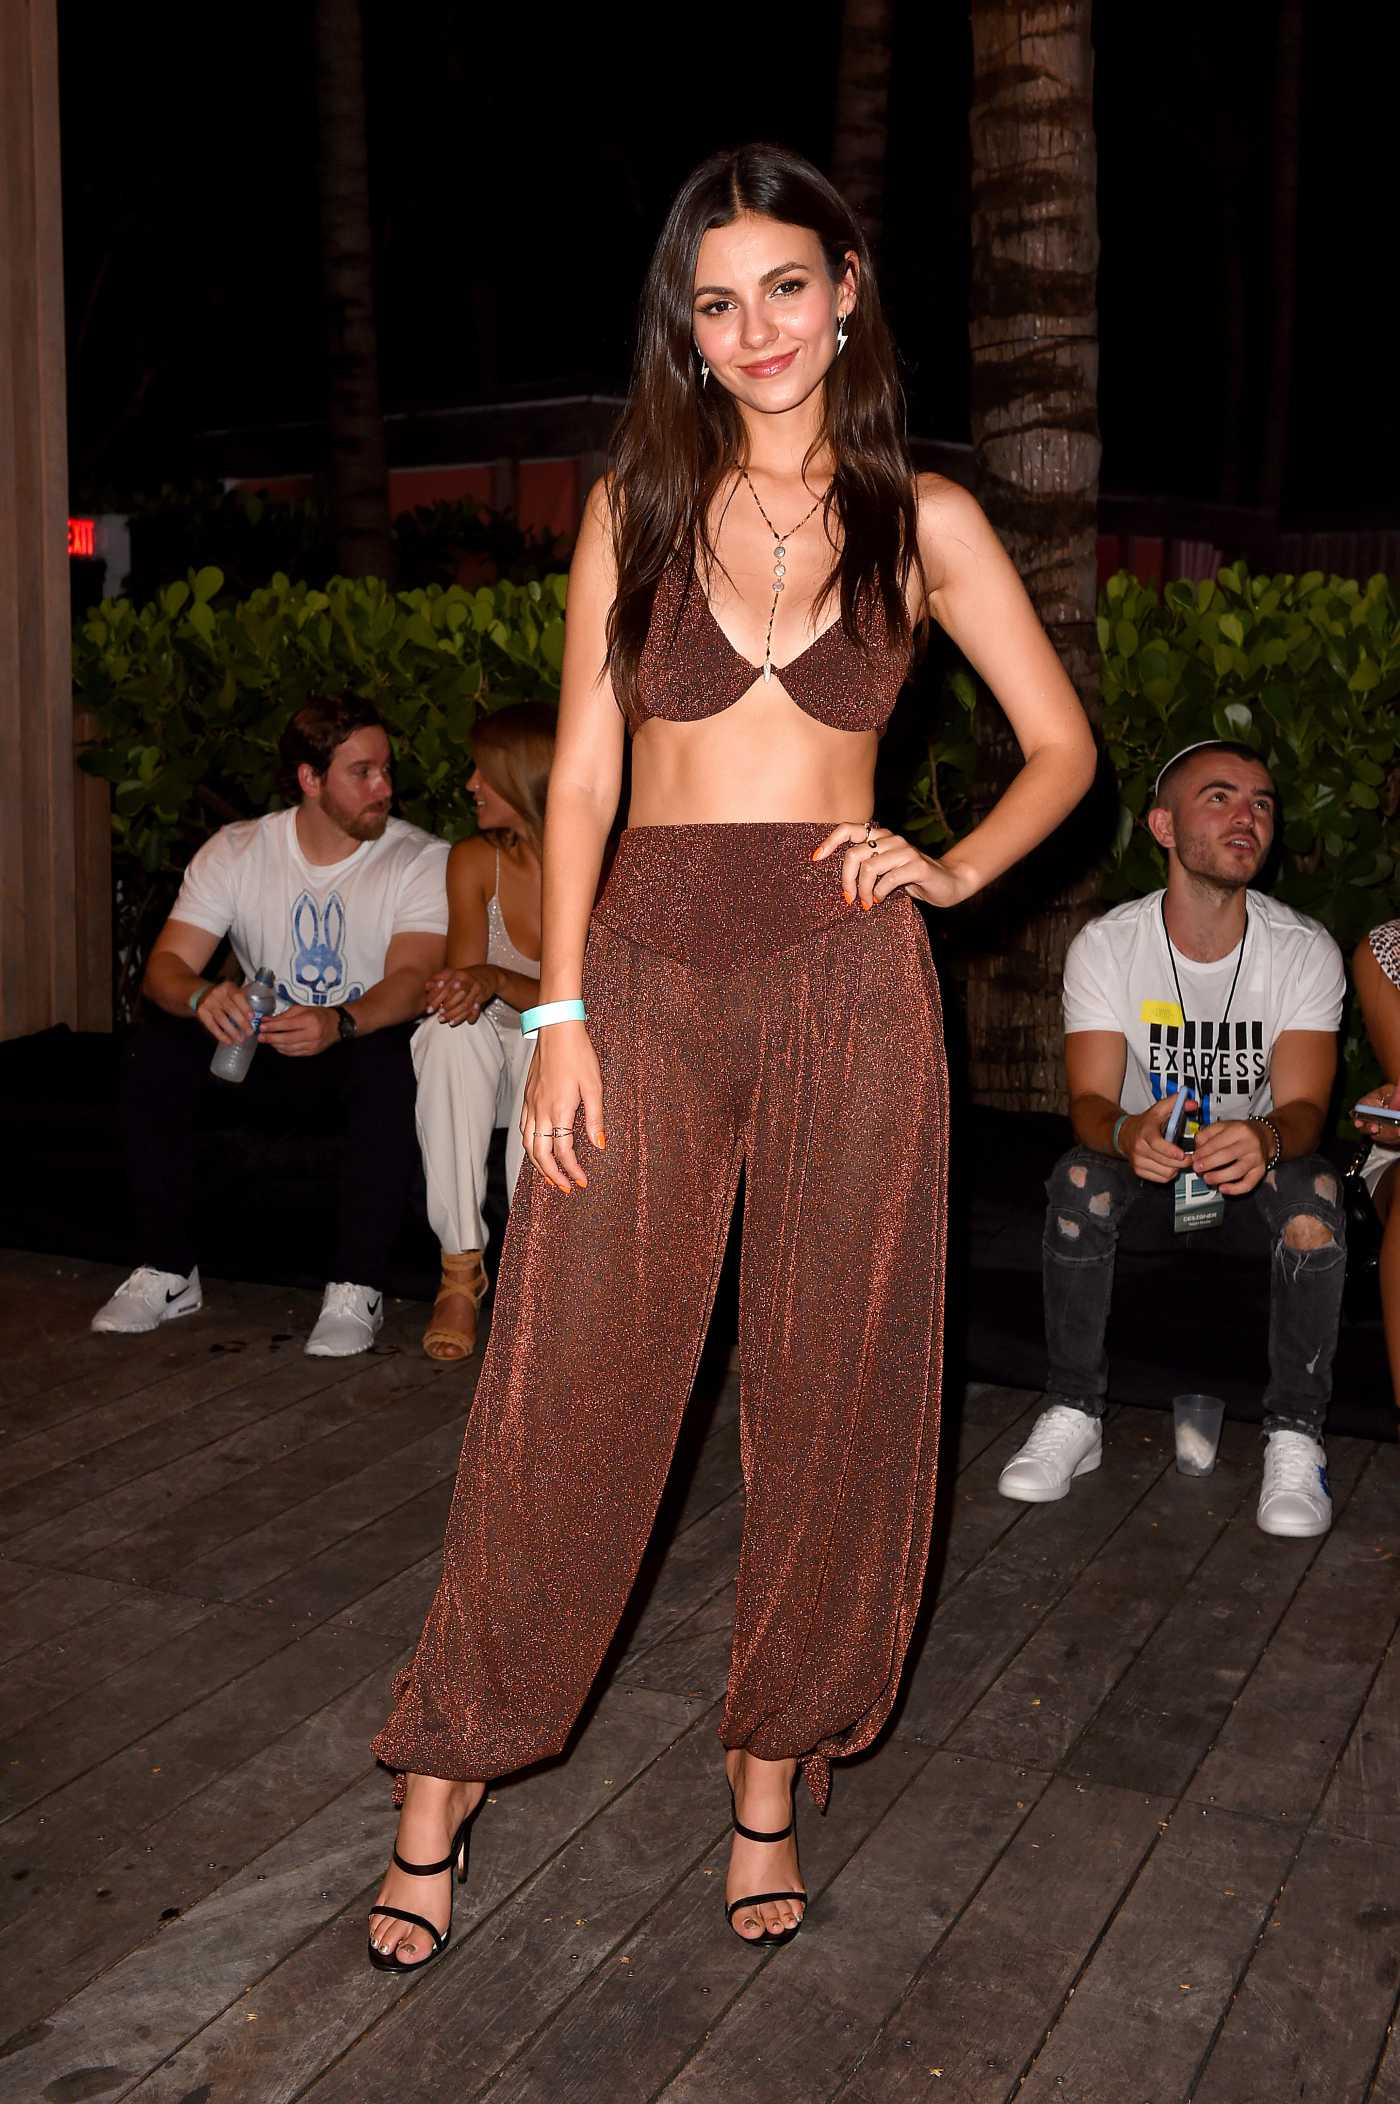 Victoria Justice Attends the Badgley Mishka Swimwear 2020 Collection Runway Show in Miami 07/13/2019